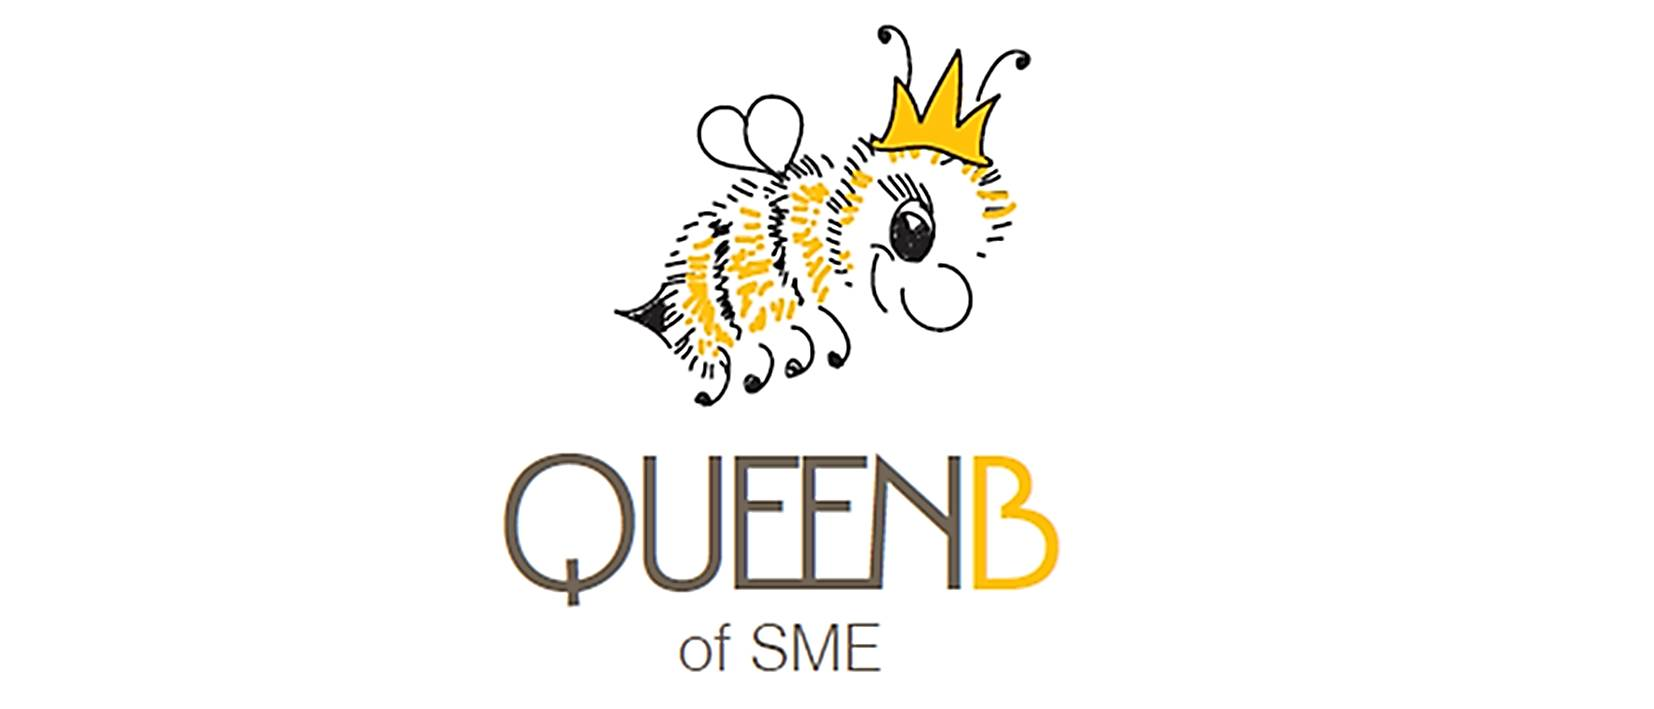 QueenB logo design, bee illustration